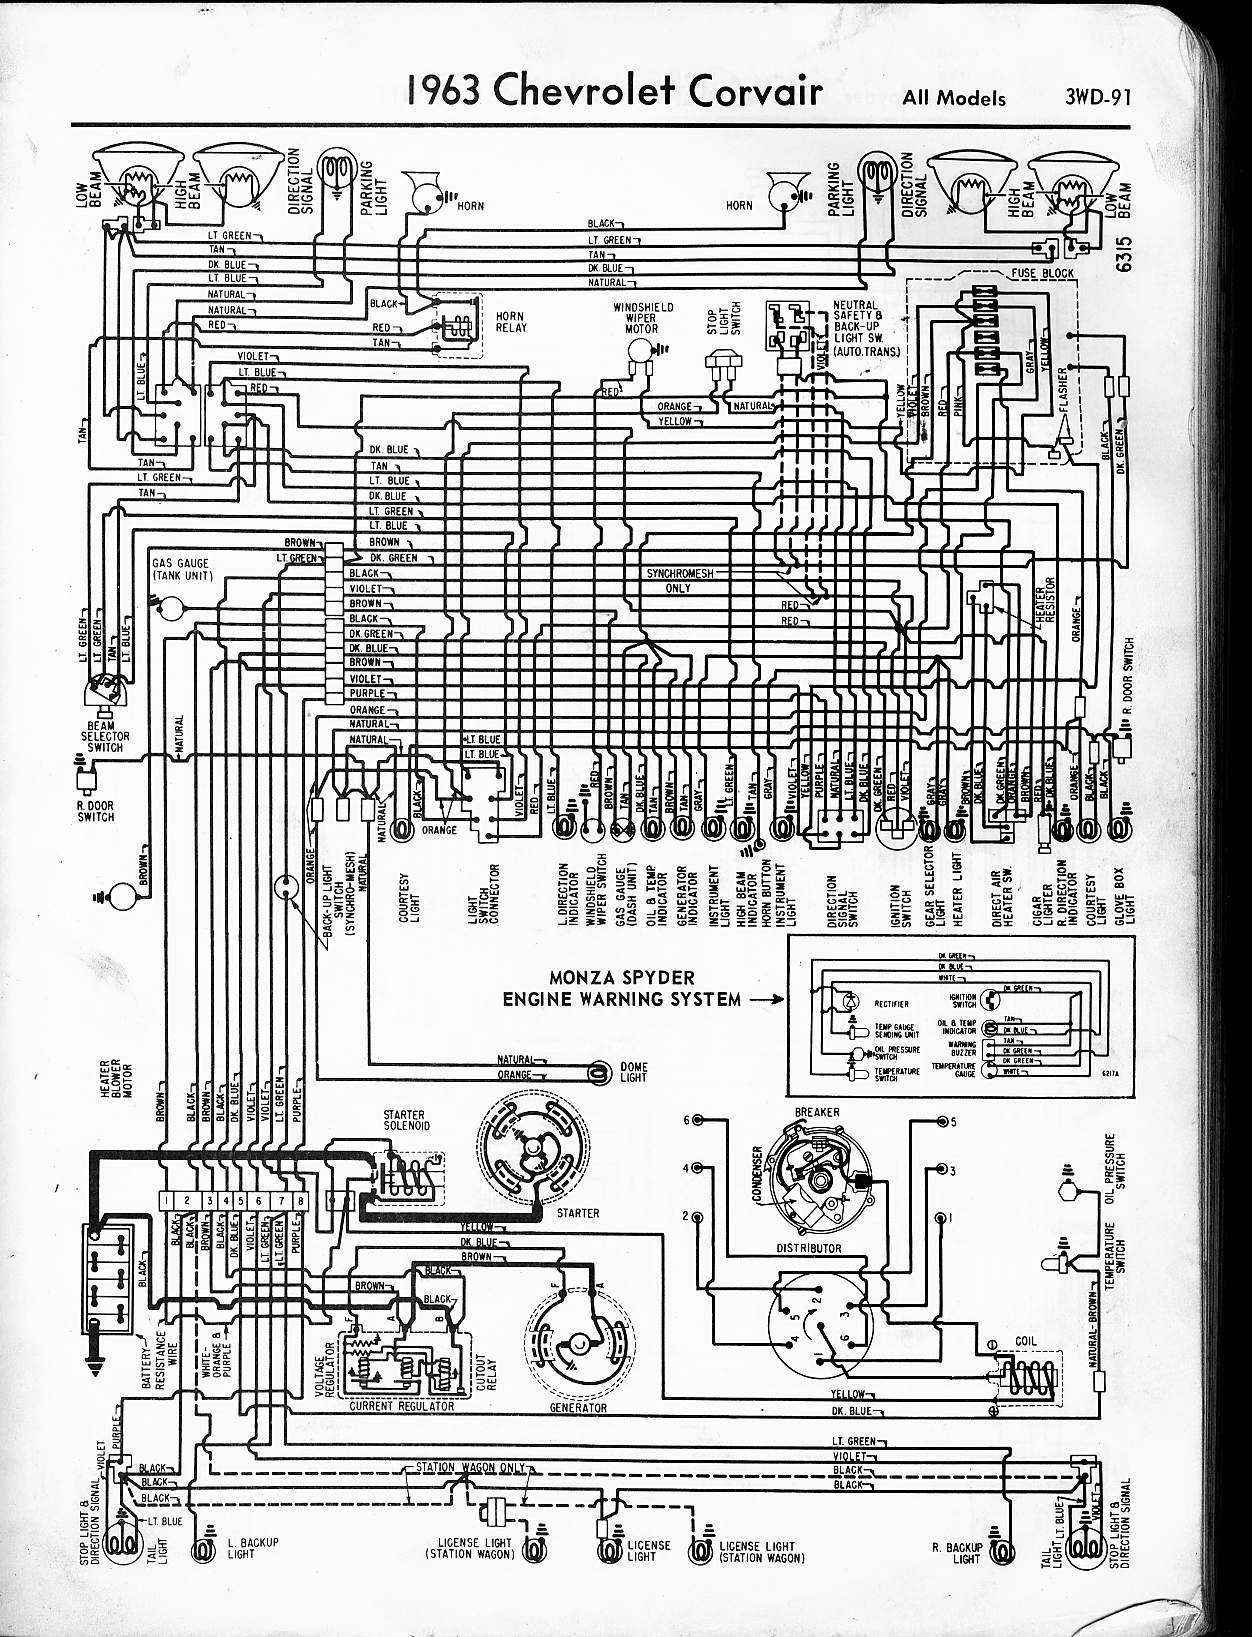 1965 Chevy Starter Motor Wiring Worksheet And Diagram 1973 Chevrolet Schematics Rh Parntesis Co